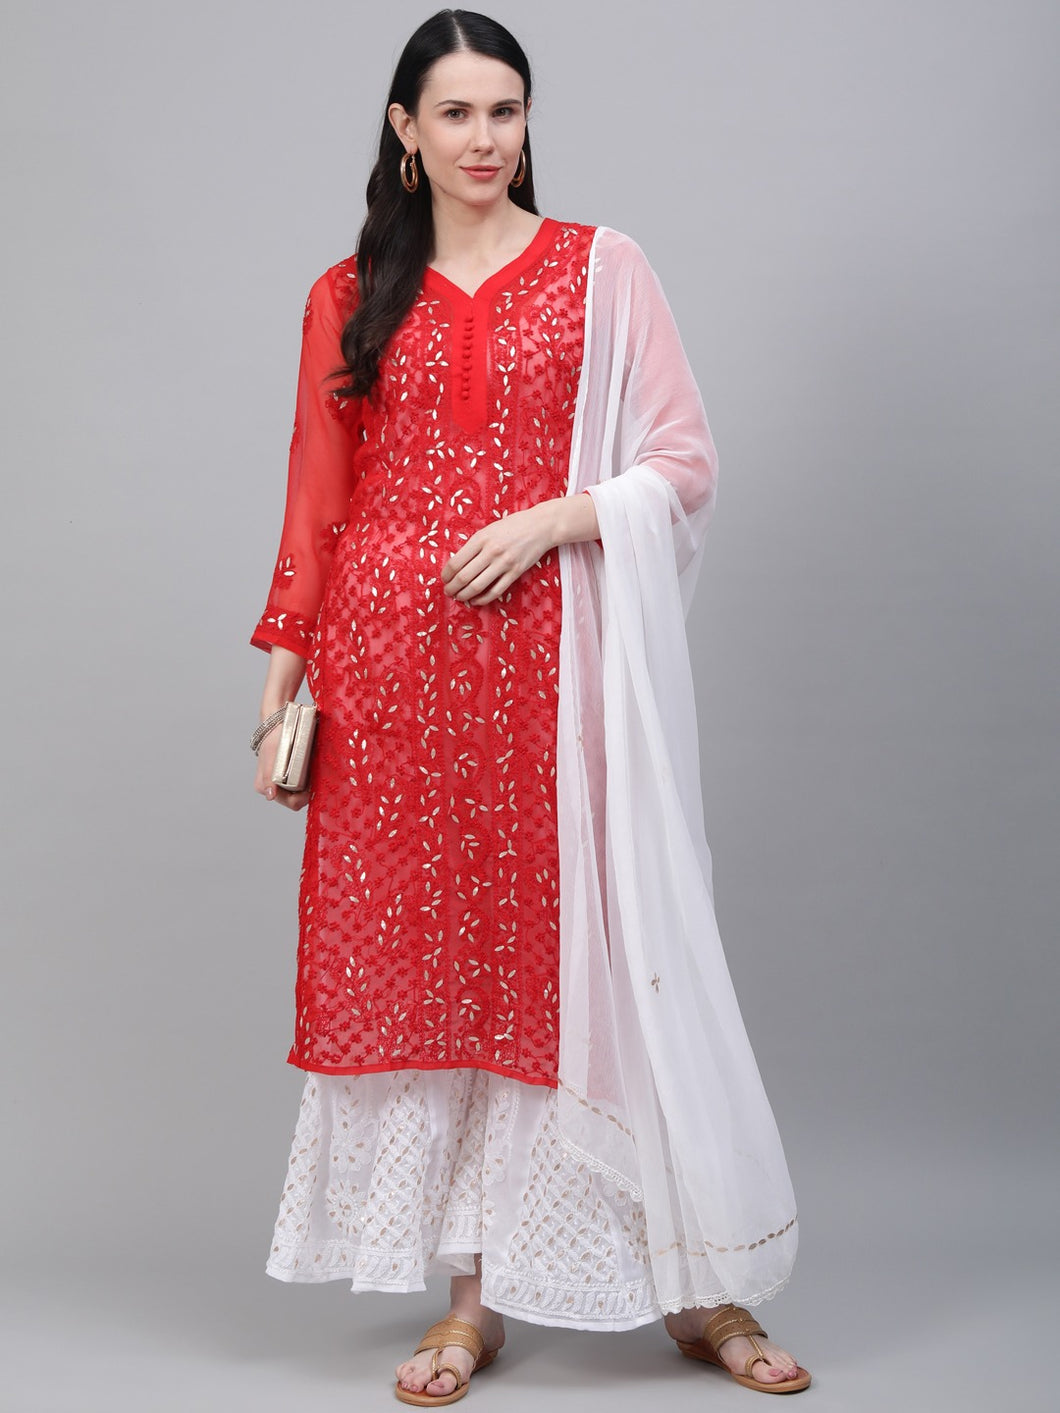 Saadgi Hand Embroidered with Gotta Patti Red Lucknowi Chikankari Kurta with Sharara & Dupatta-SETJ65RED